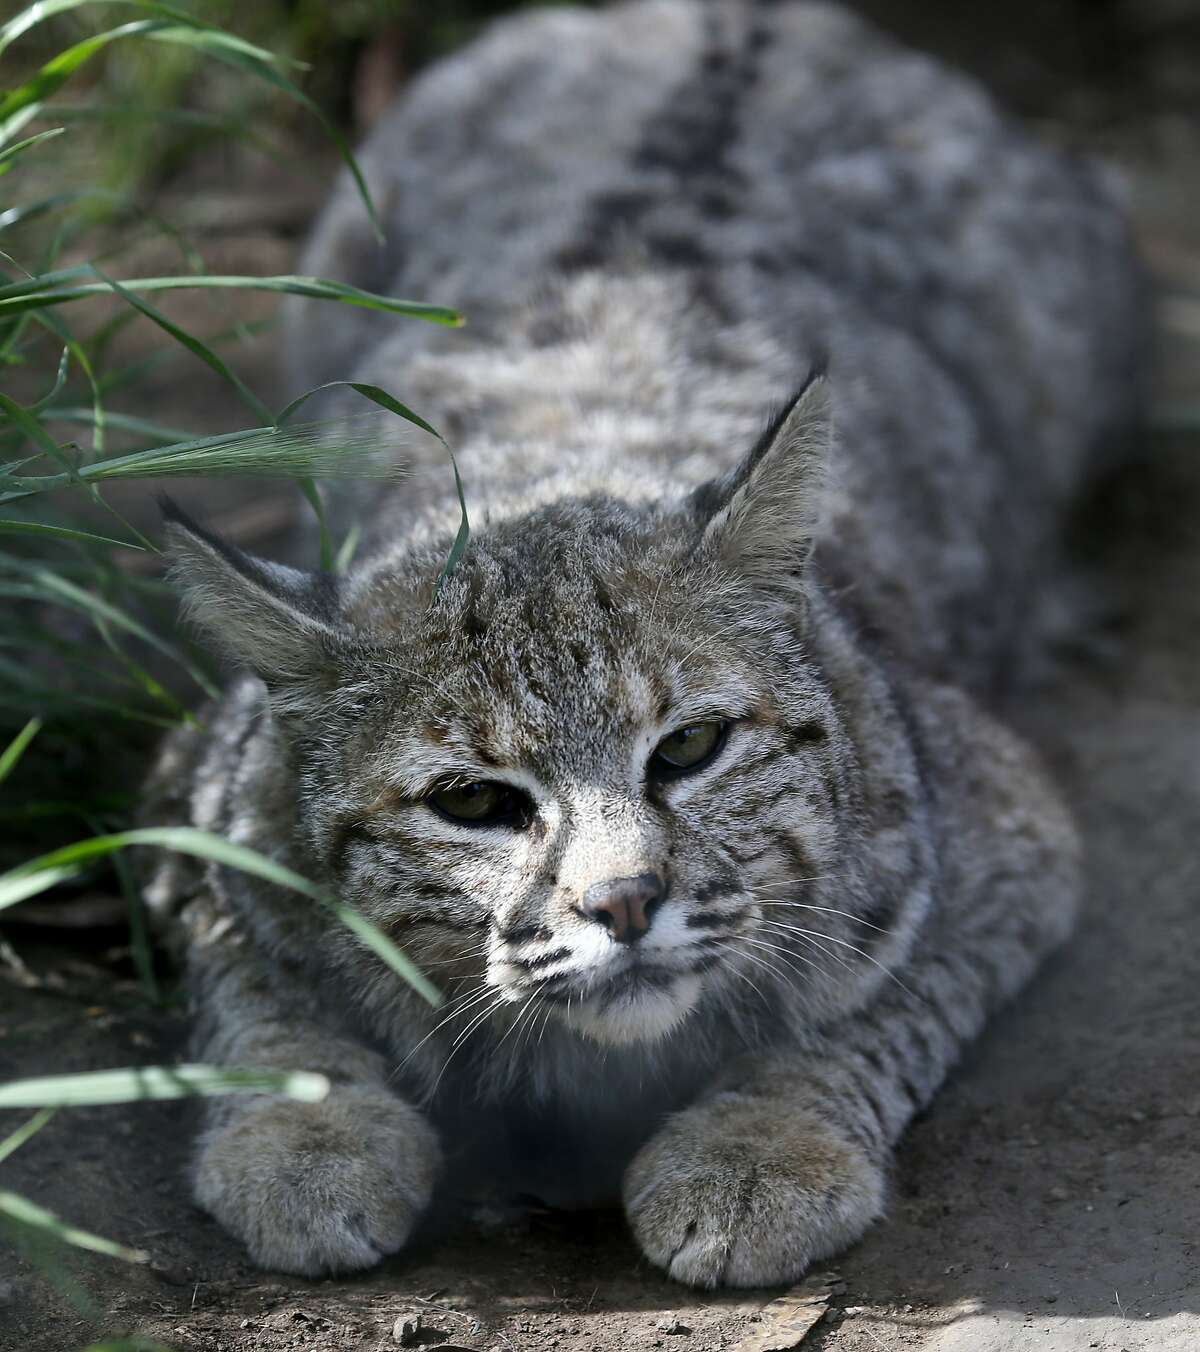 """Billy, an adult bobcat, kneels in his large enclosure Thursday April 9, 2015. """"Billy"""" a rescued bobcat from Southern California now lives at the Sonoma County Wildlife Rescue center in Petaluma, Calif. Wildlife advocacy groups are demanding the state impose a complete ban on the hunting and trapping of bobcats."""